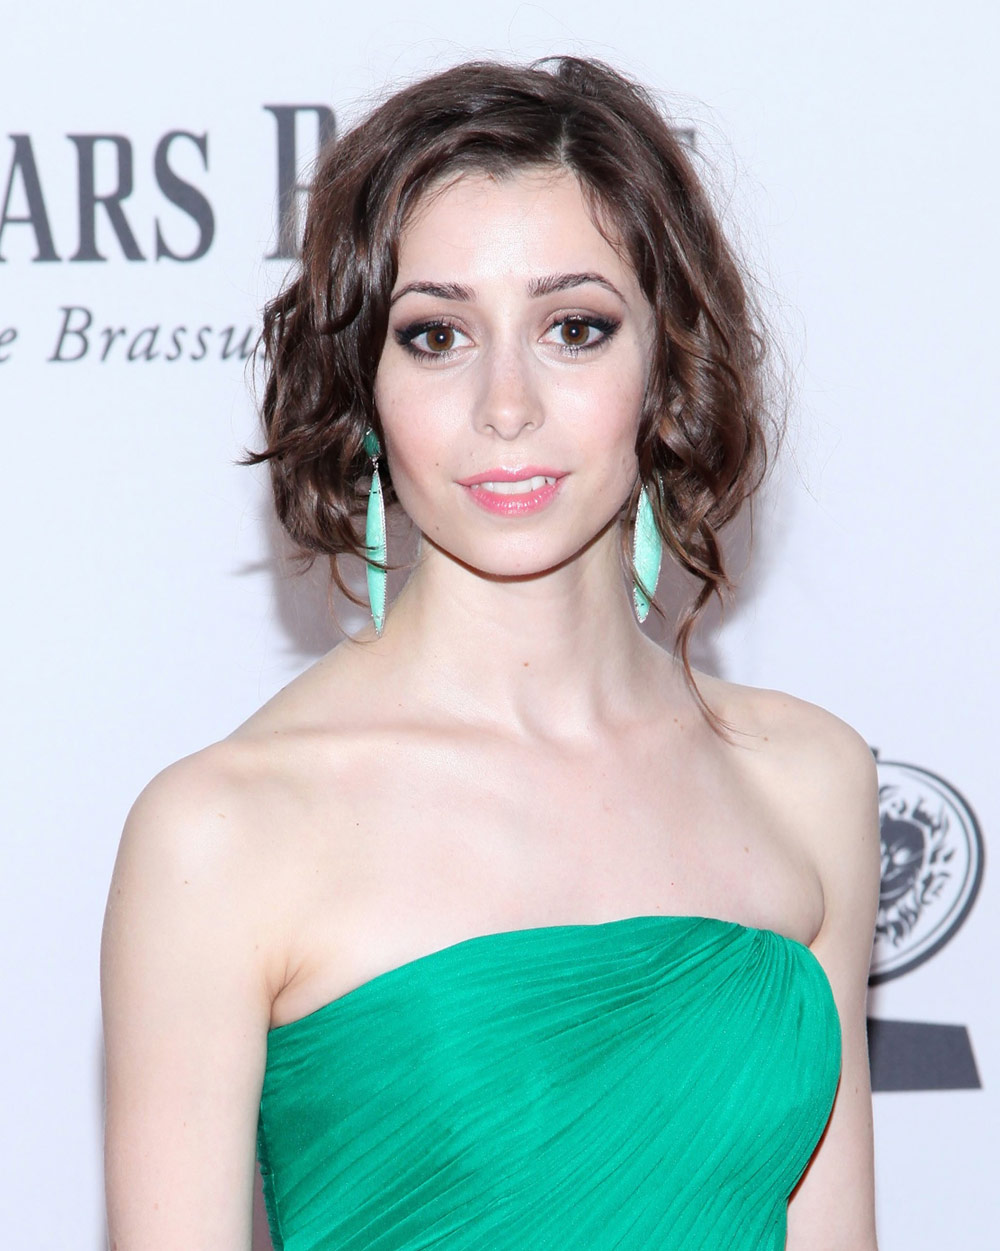 Who is the mother on How I Met Your Mother? Cristin Milioti